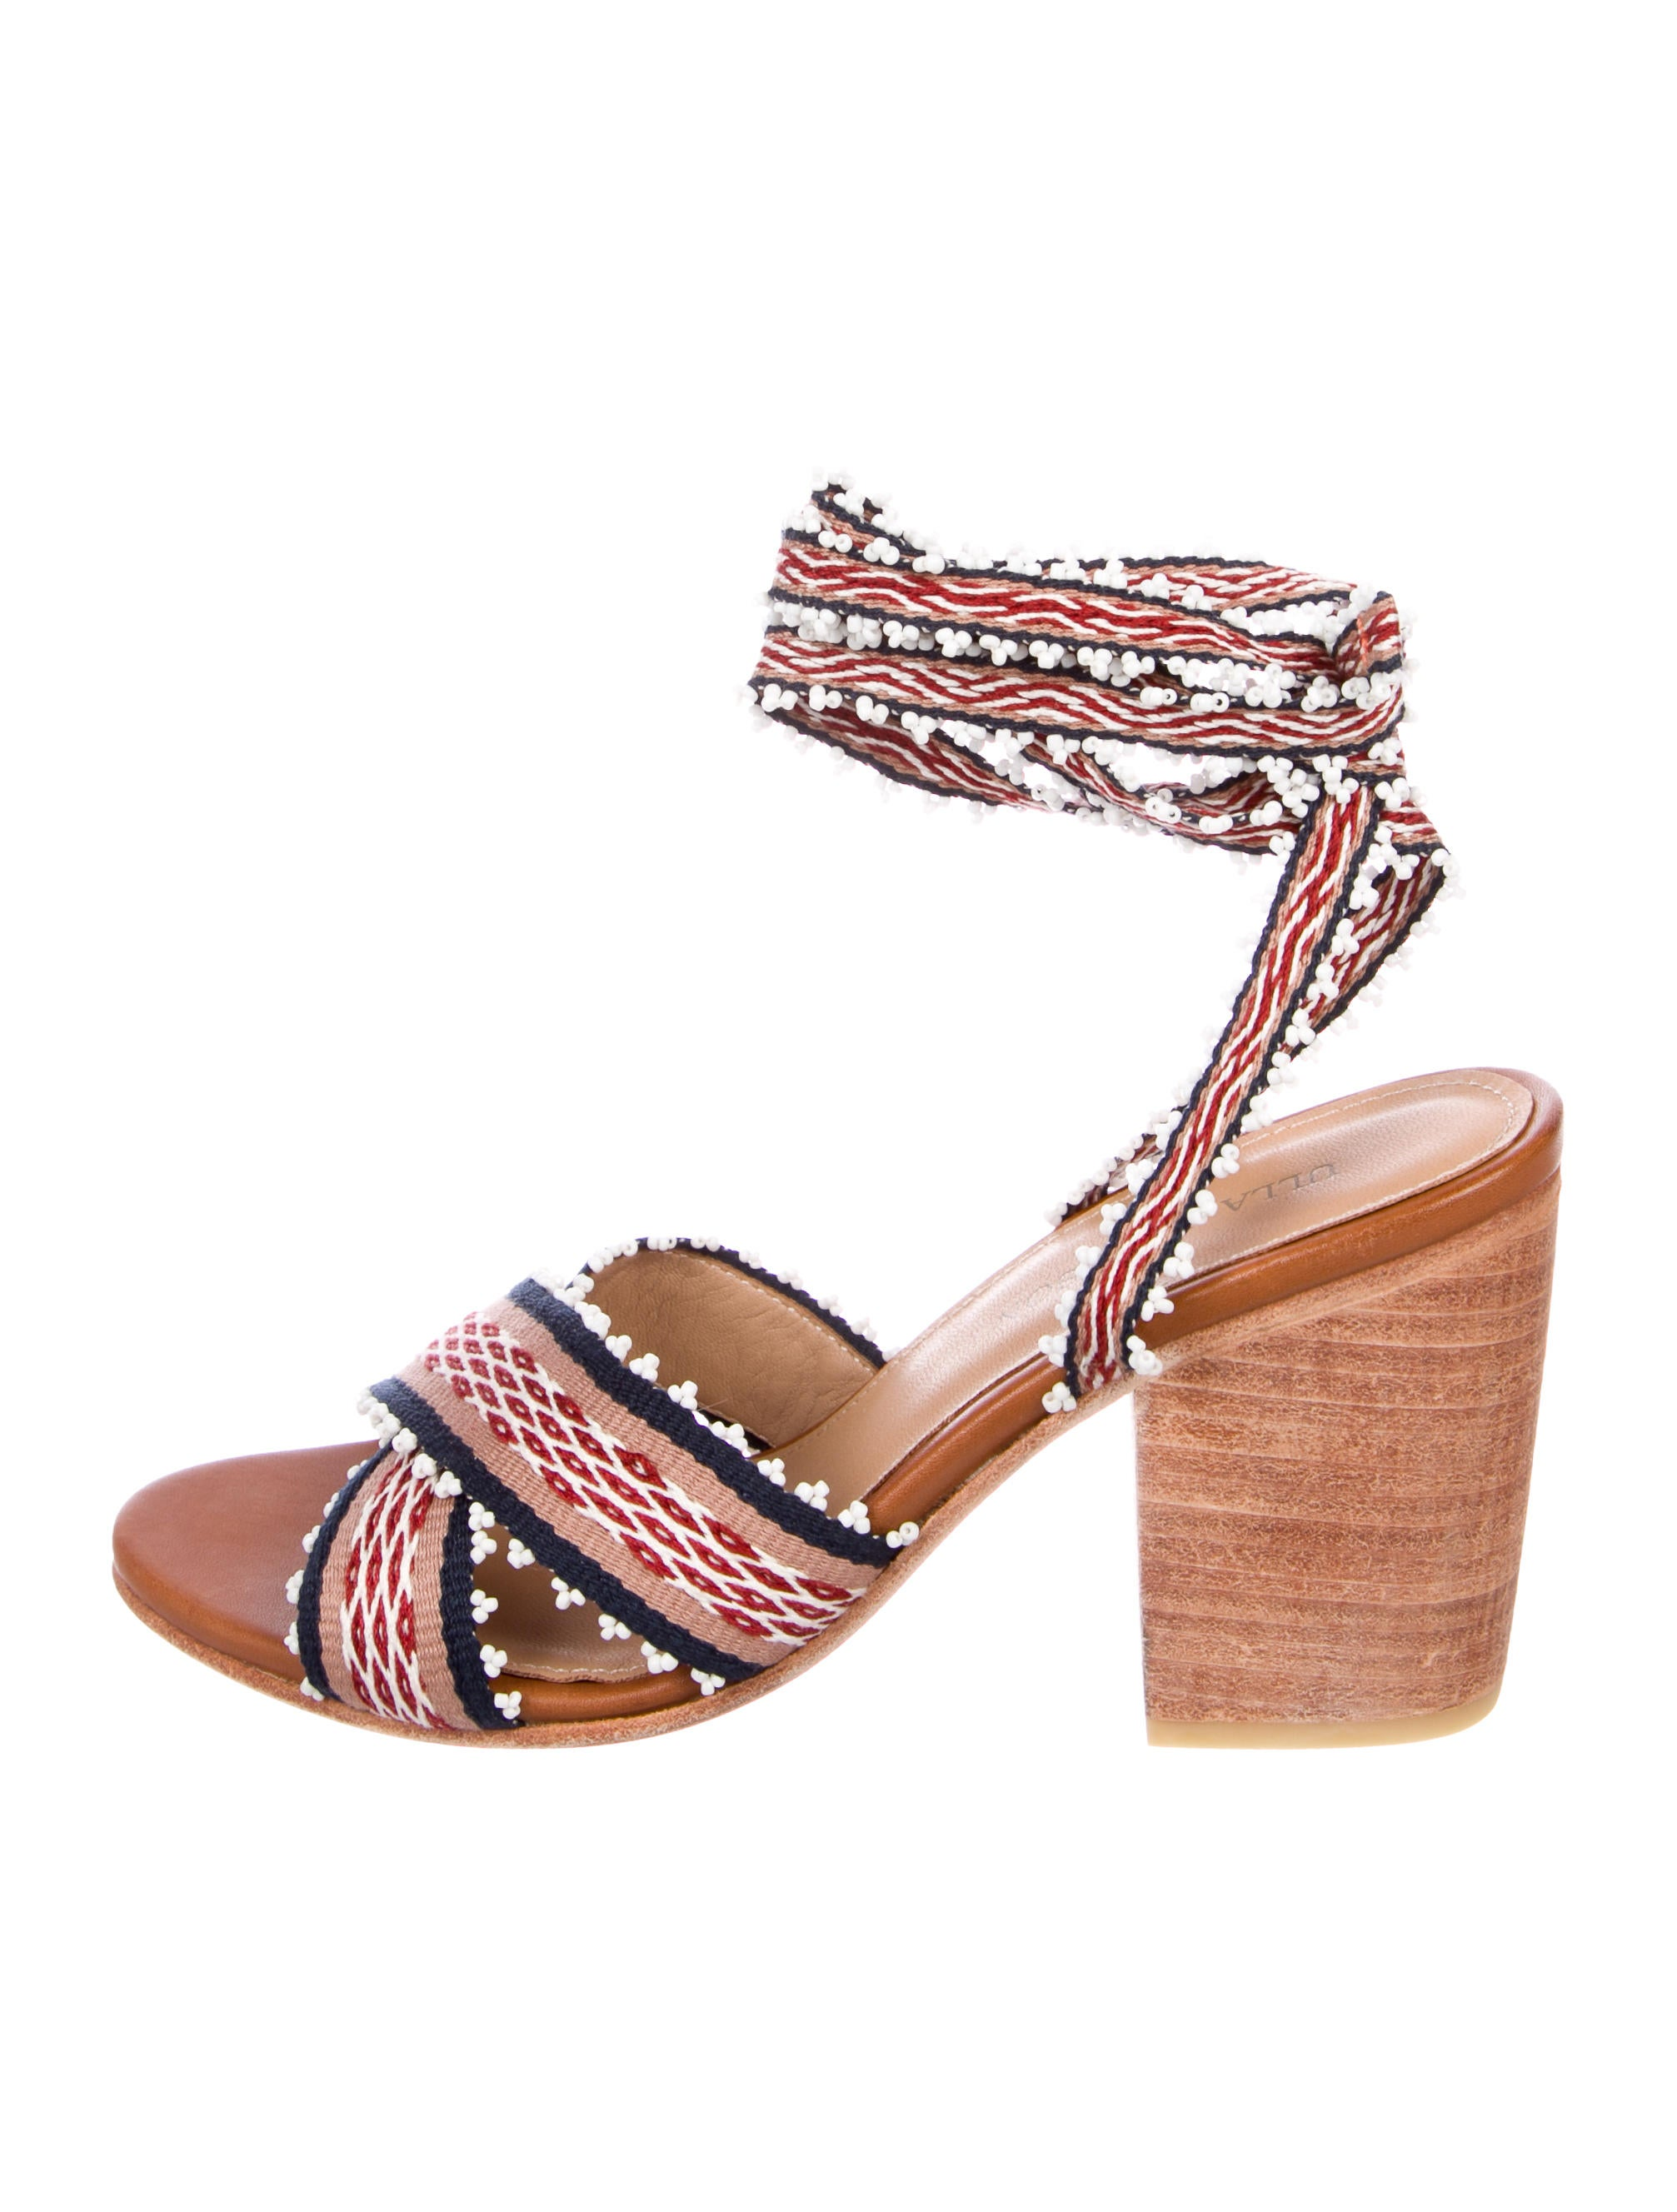 Ulla Johnson Canvas Crossover Sandals limited edition for sale xNKsC